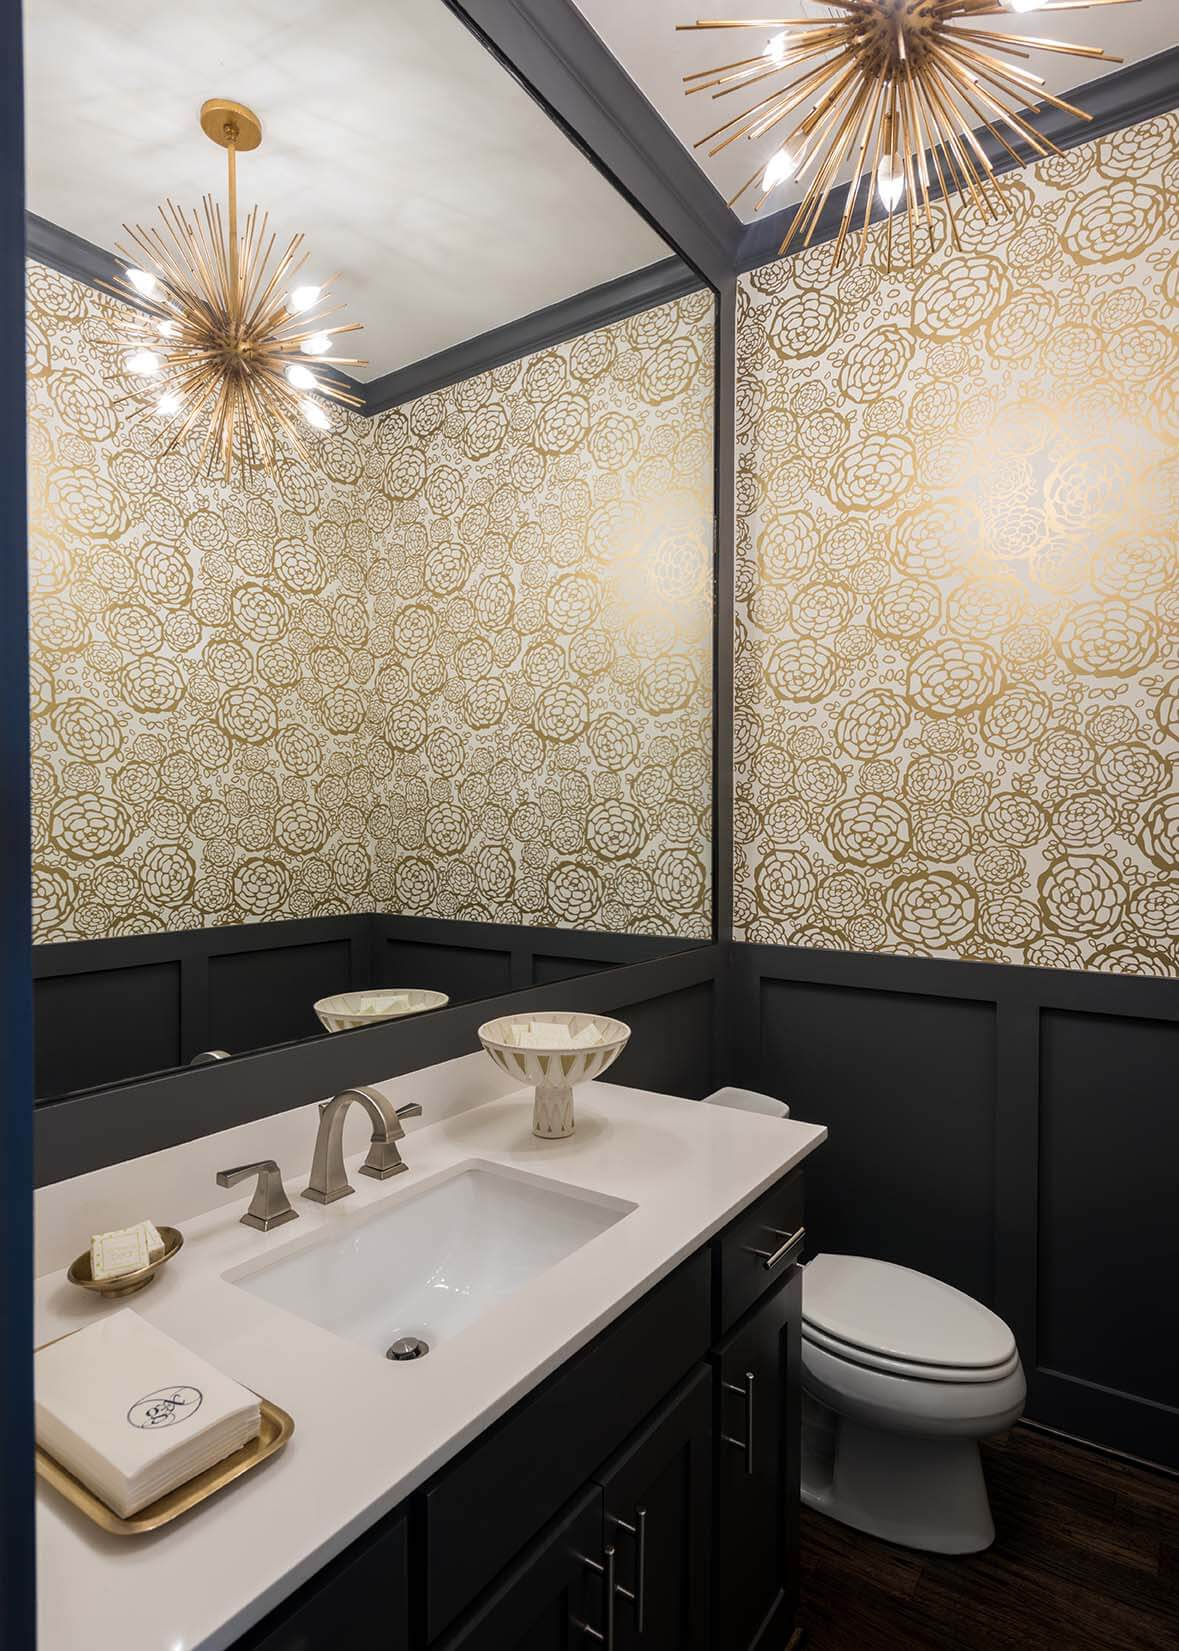 A bold powder bathroom wallpaper increases the glamour factor in this gorgeous Dallas new build. | ML Interiors Group is an interior design firm specializing in making homes happier and more efficient.